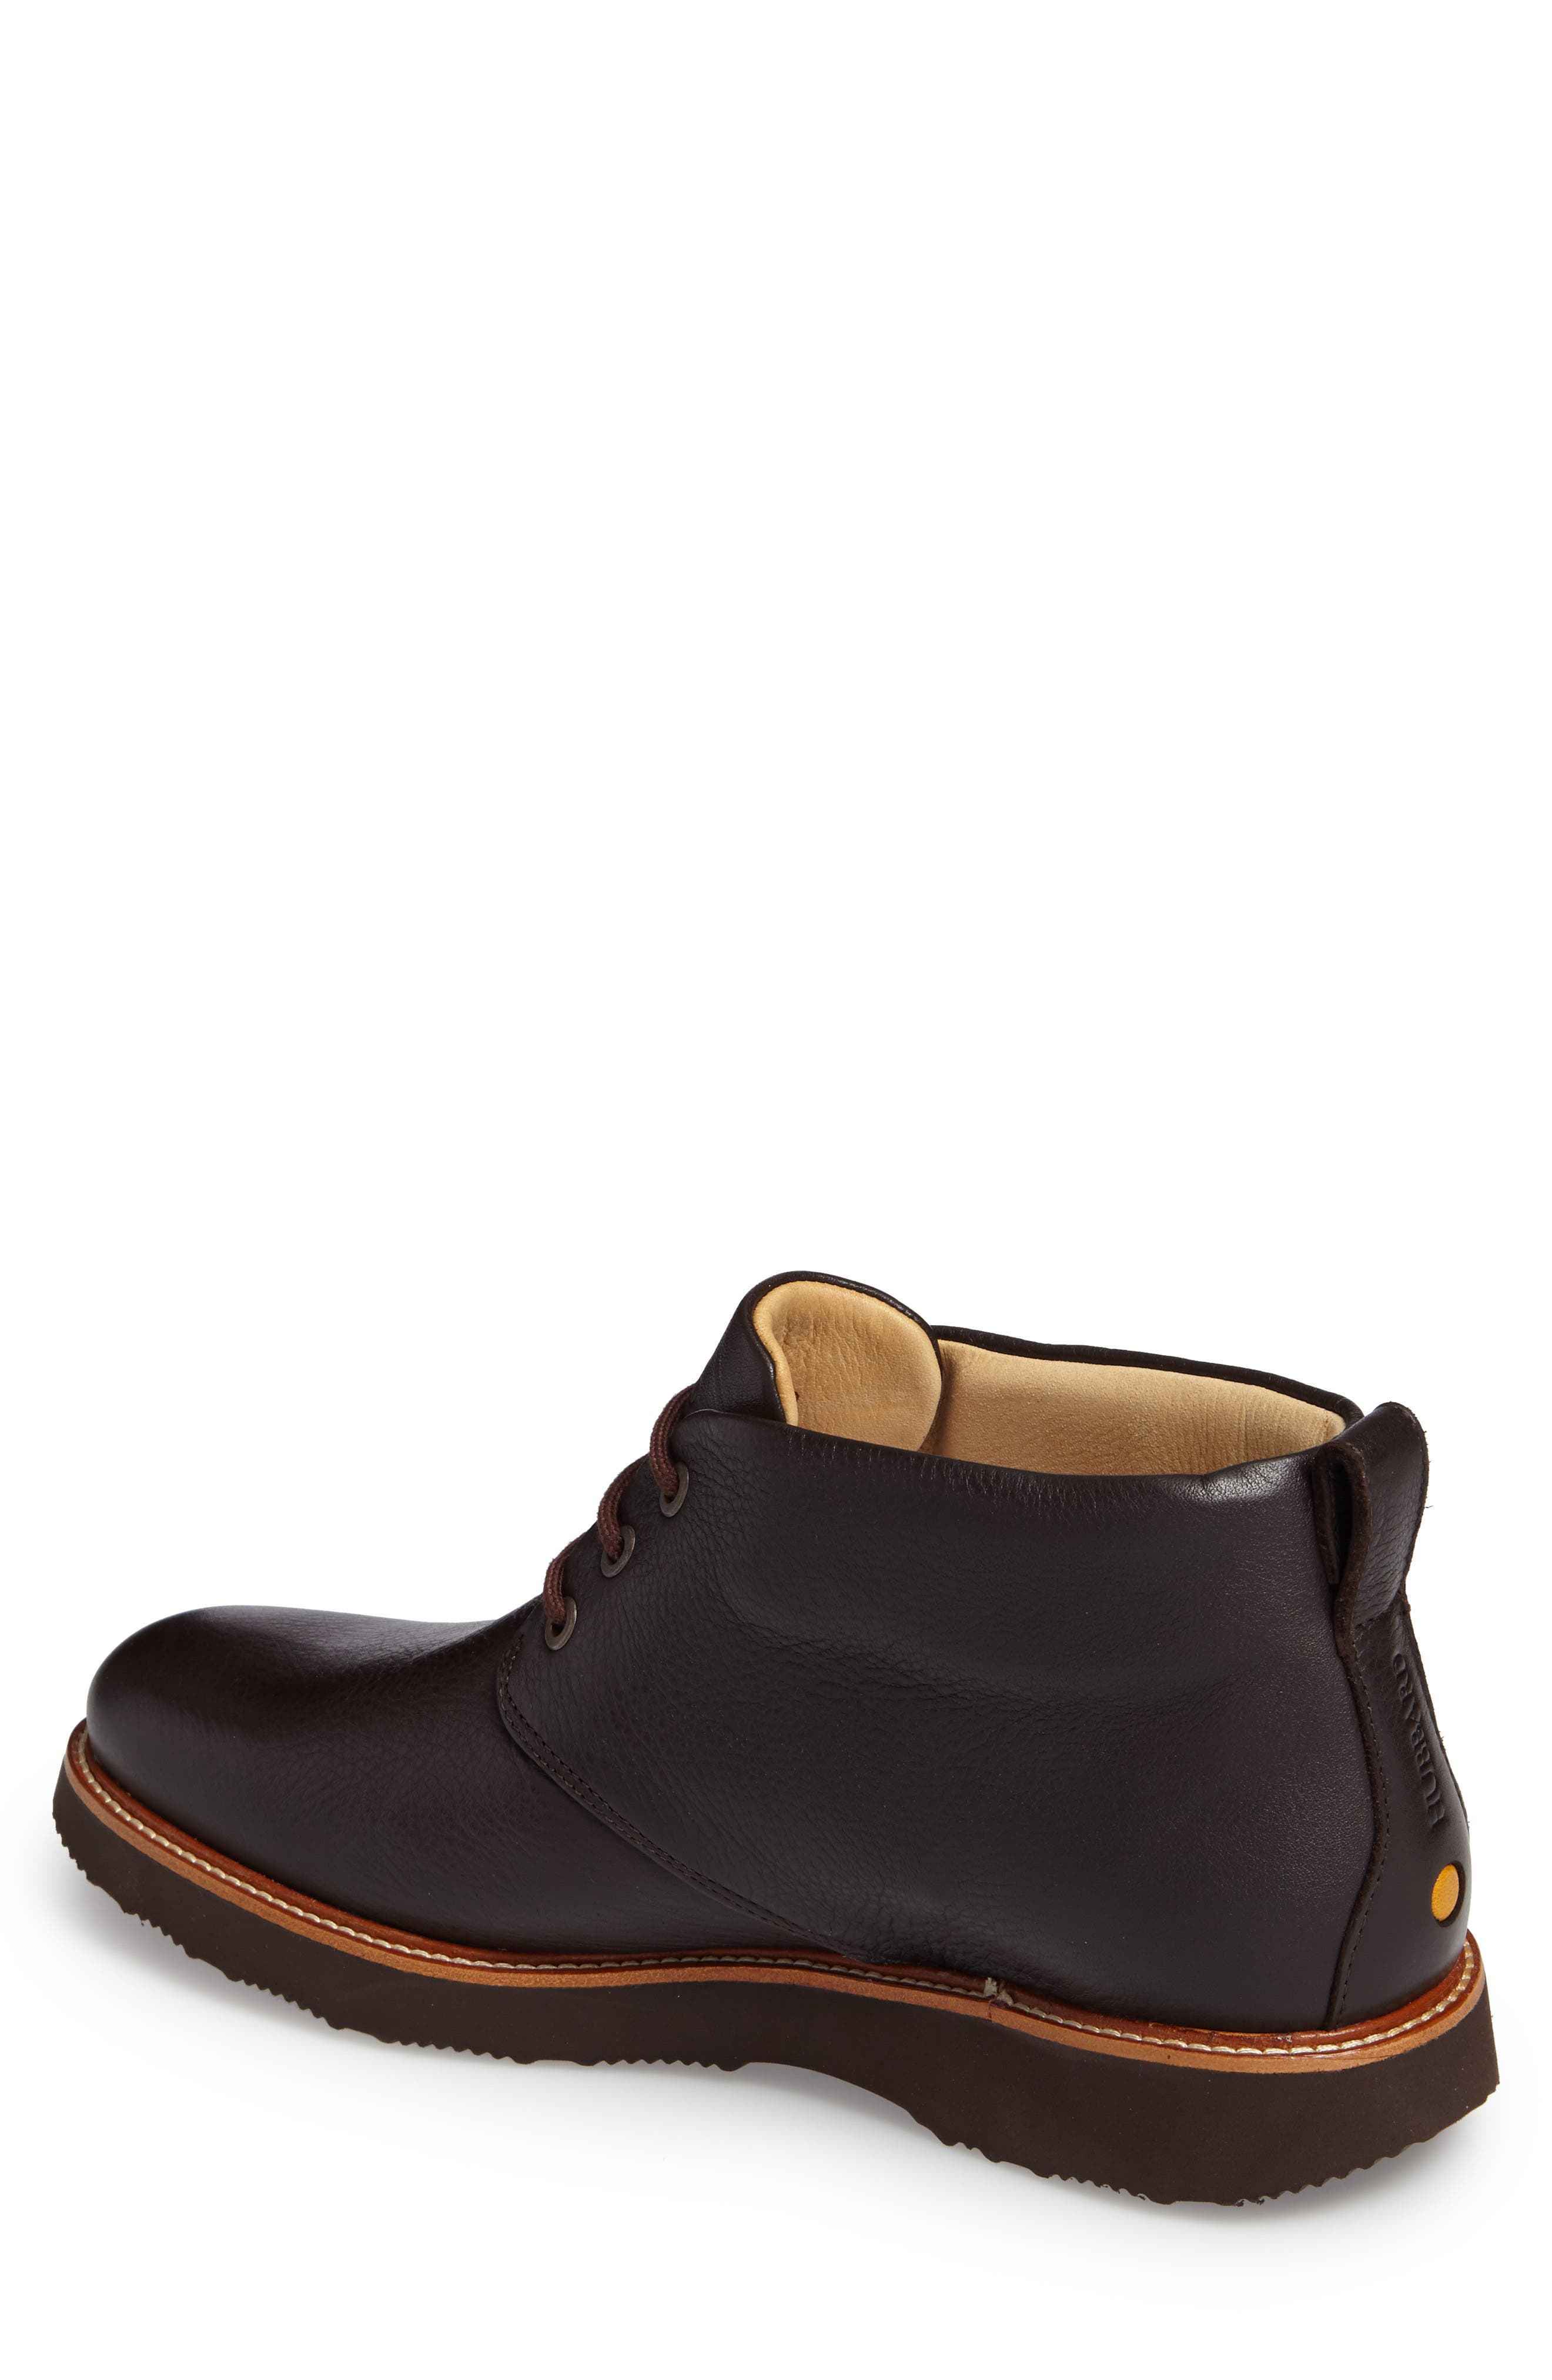 Re-Boot Chukka Boot,                             Alternate thumbnail 2, color,                             ESPRESSO LEATHER